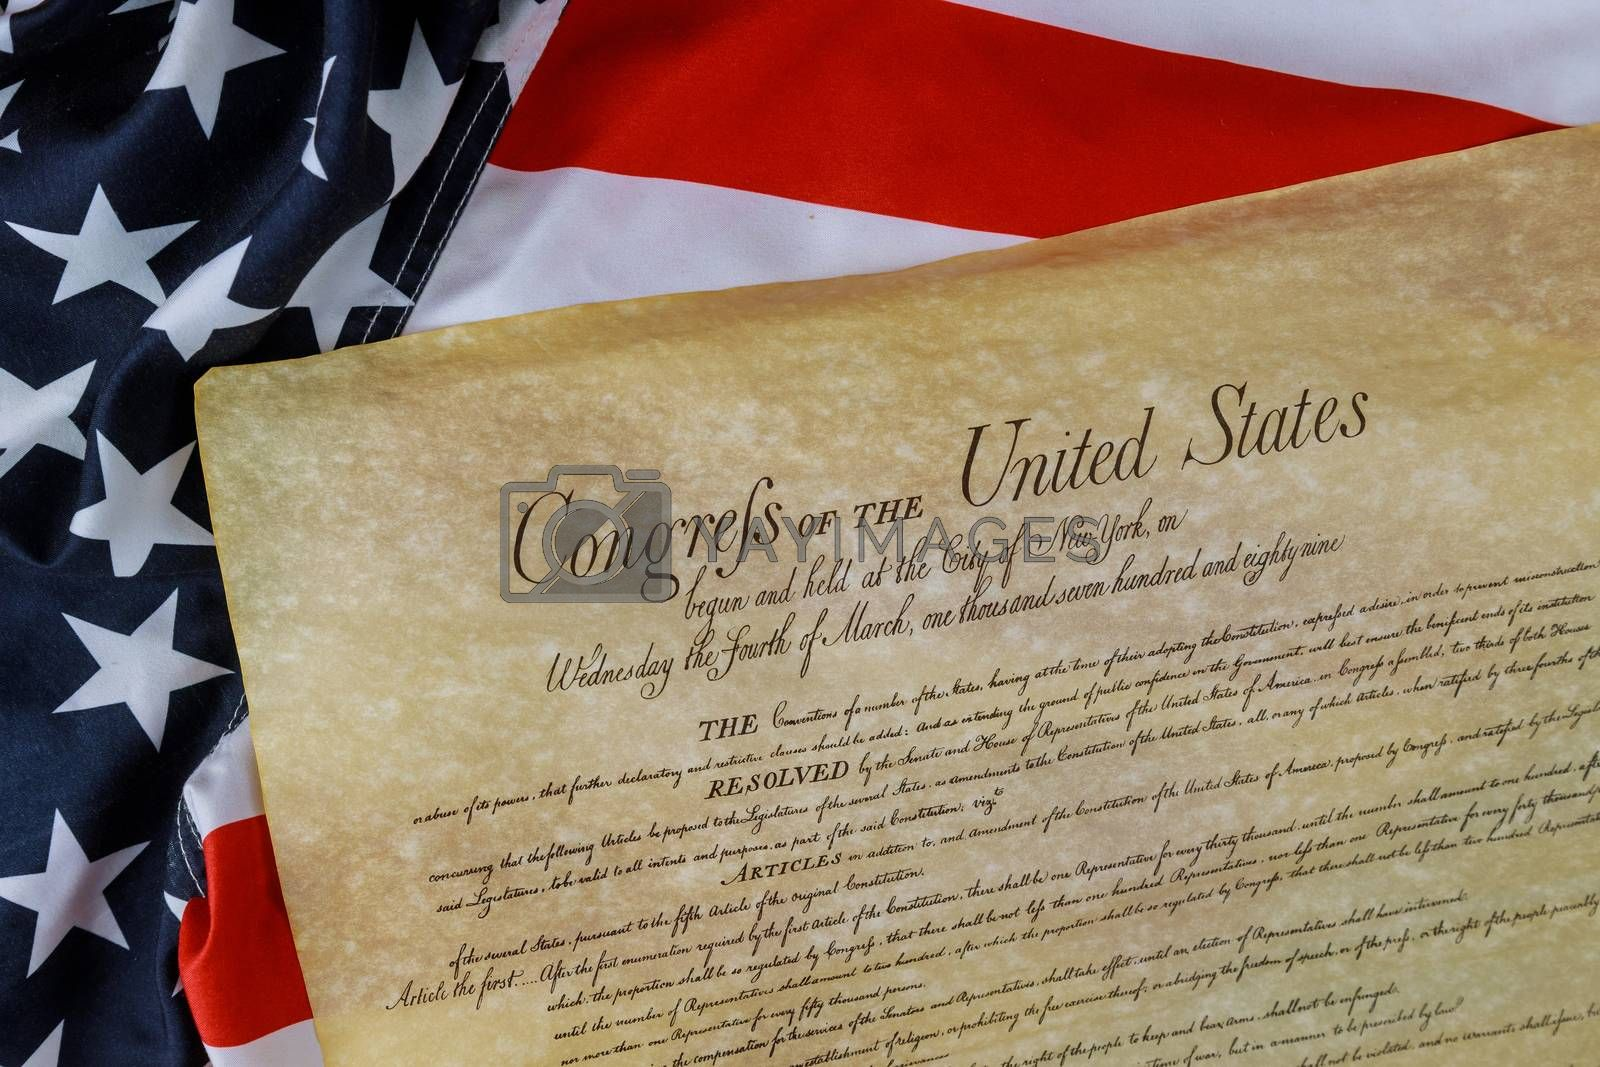 Constitution of the United States of America first of the National Archives in the Constitutional Convention in 1787.